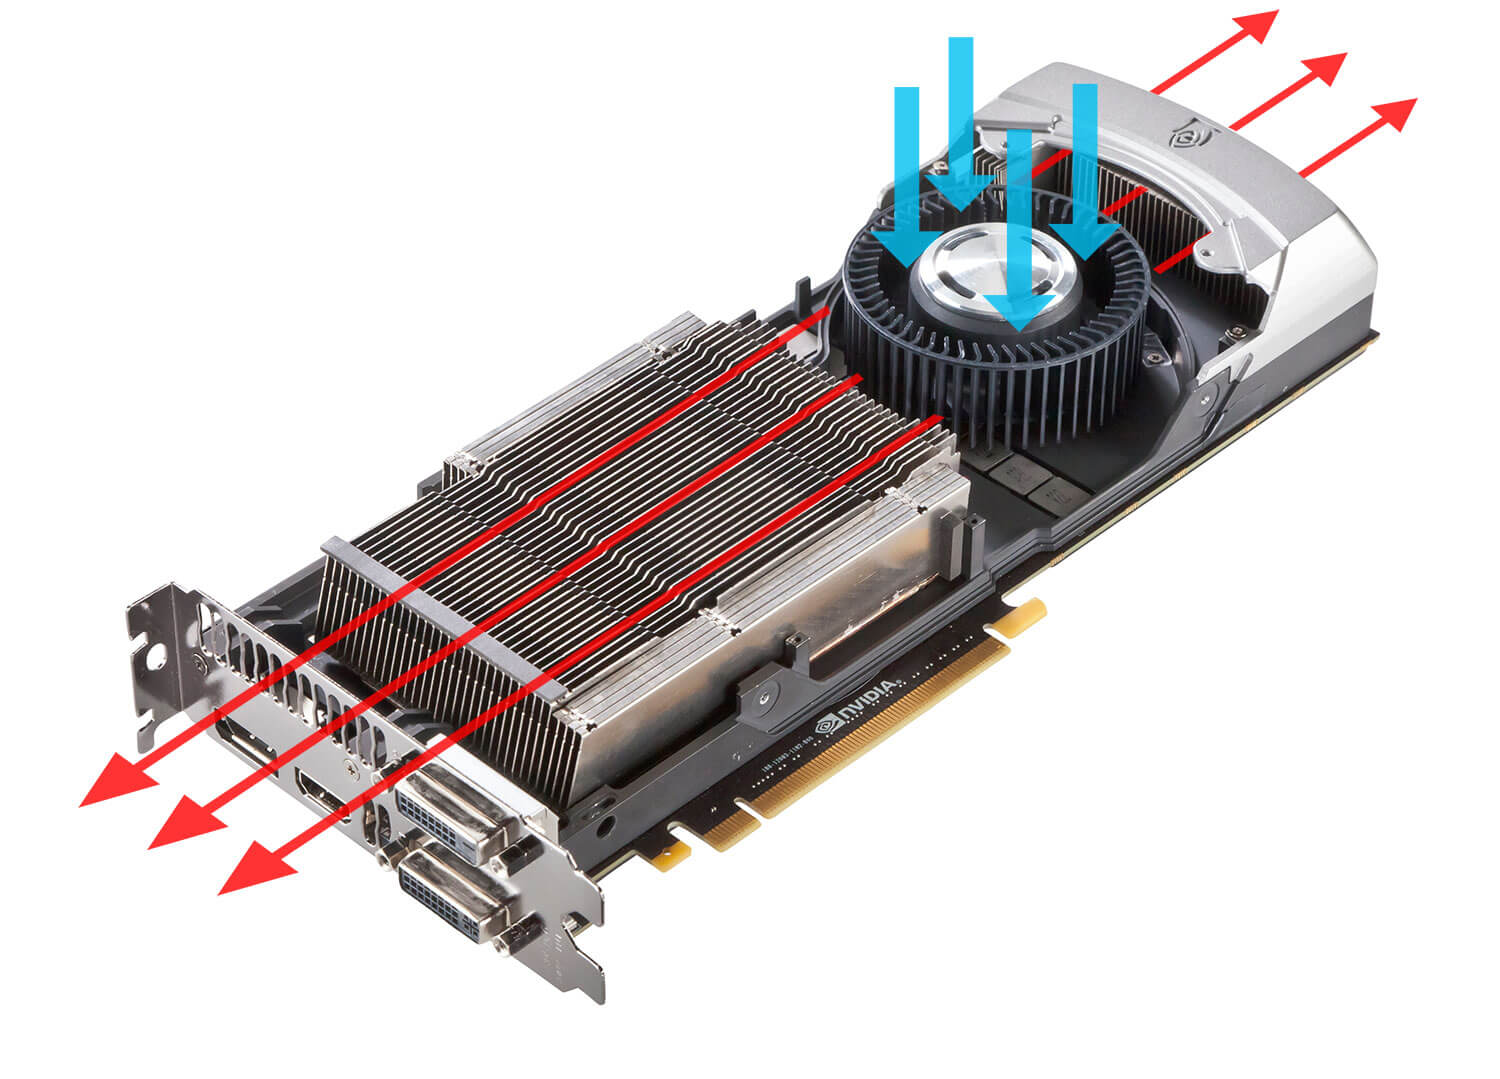 Open Air GPU or Blower Cooler GPU - Which One Should You Get